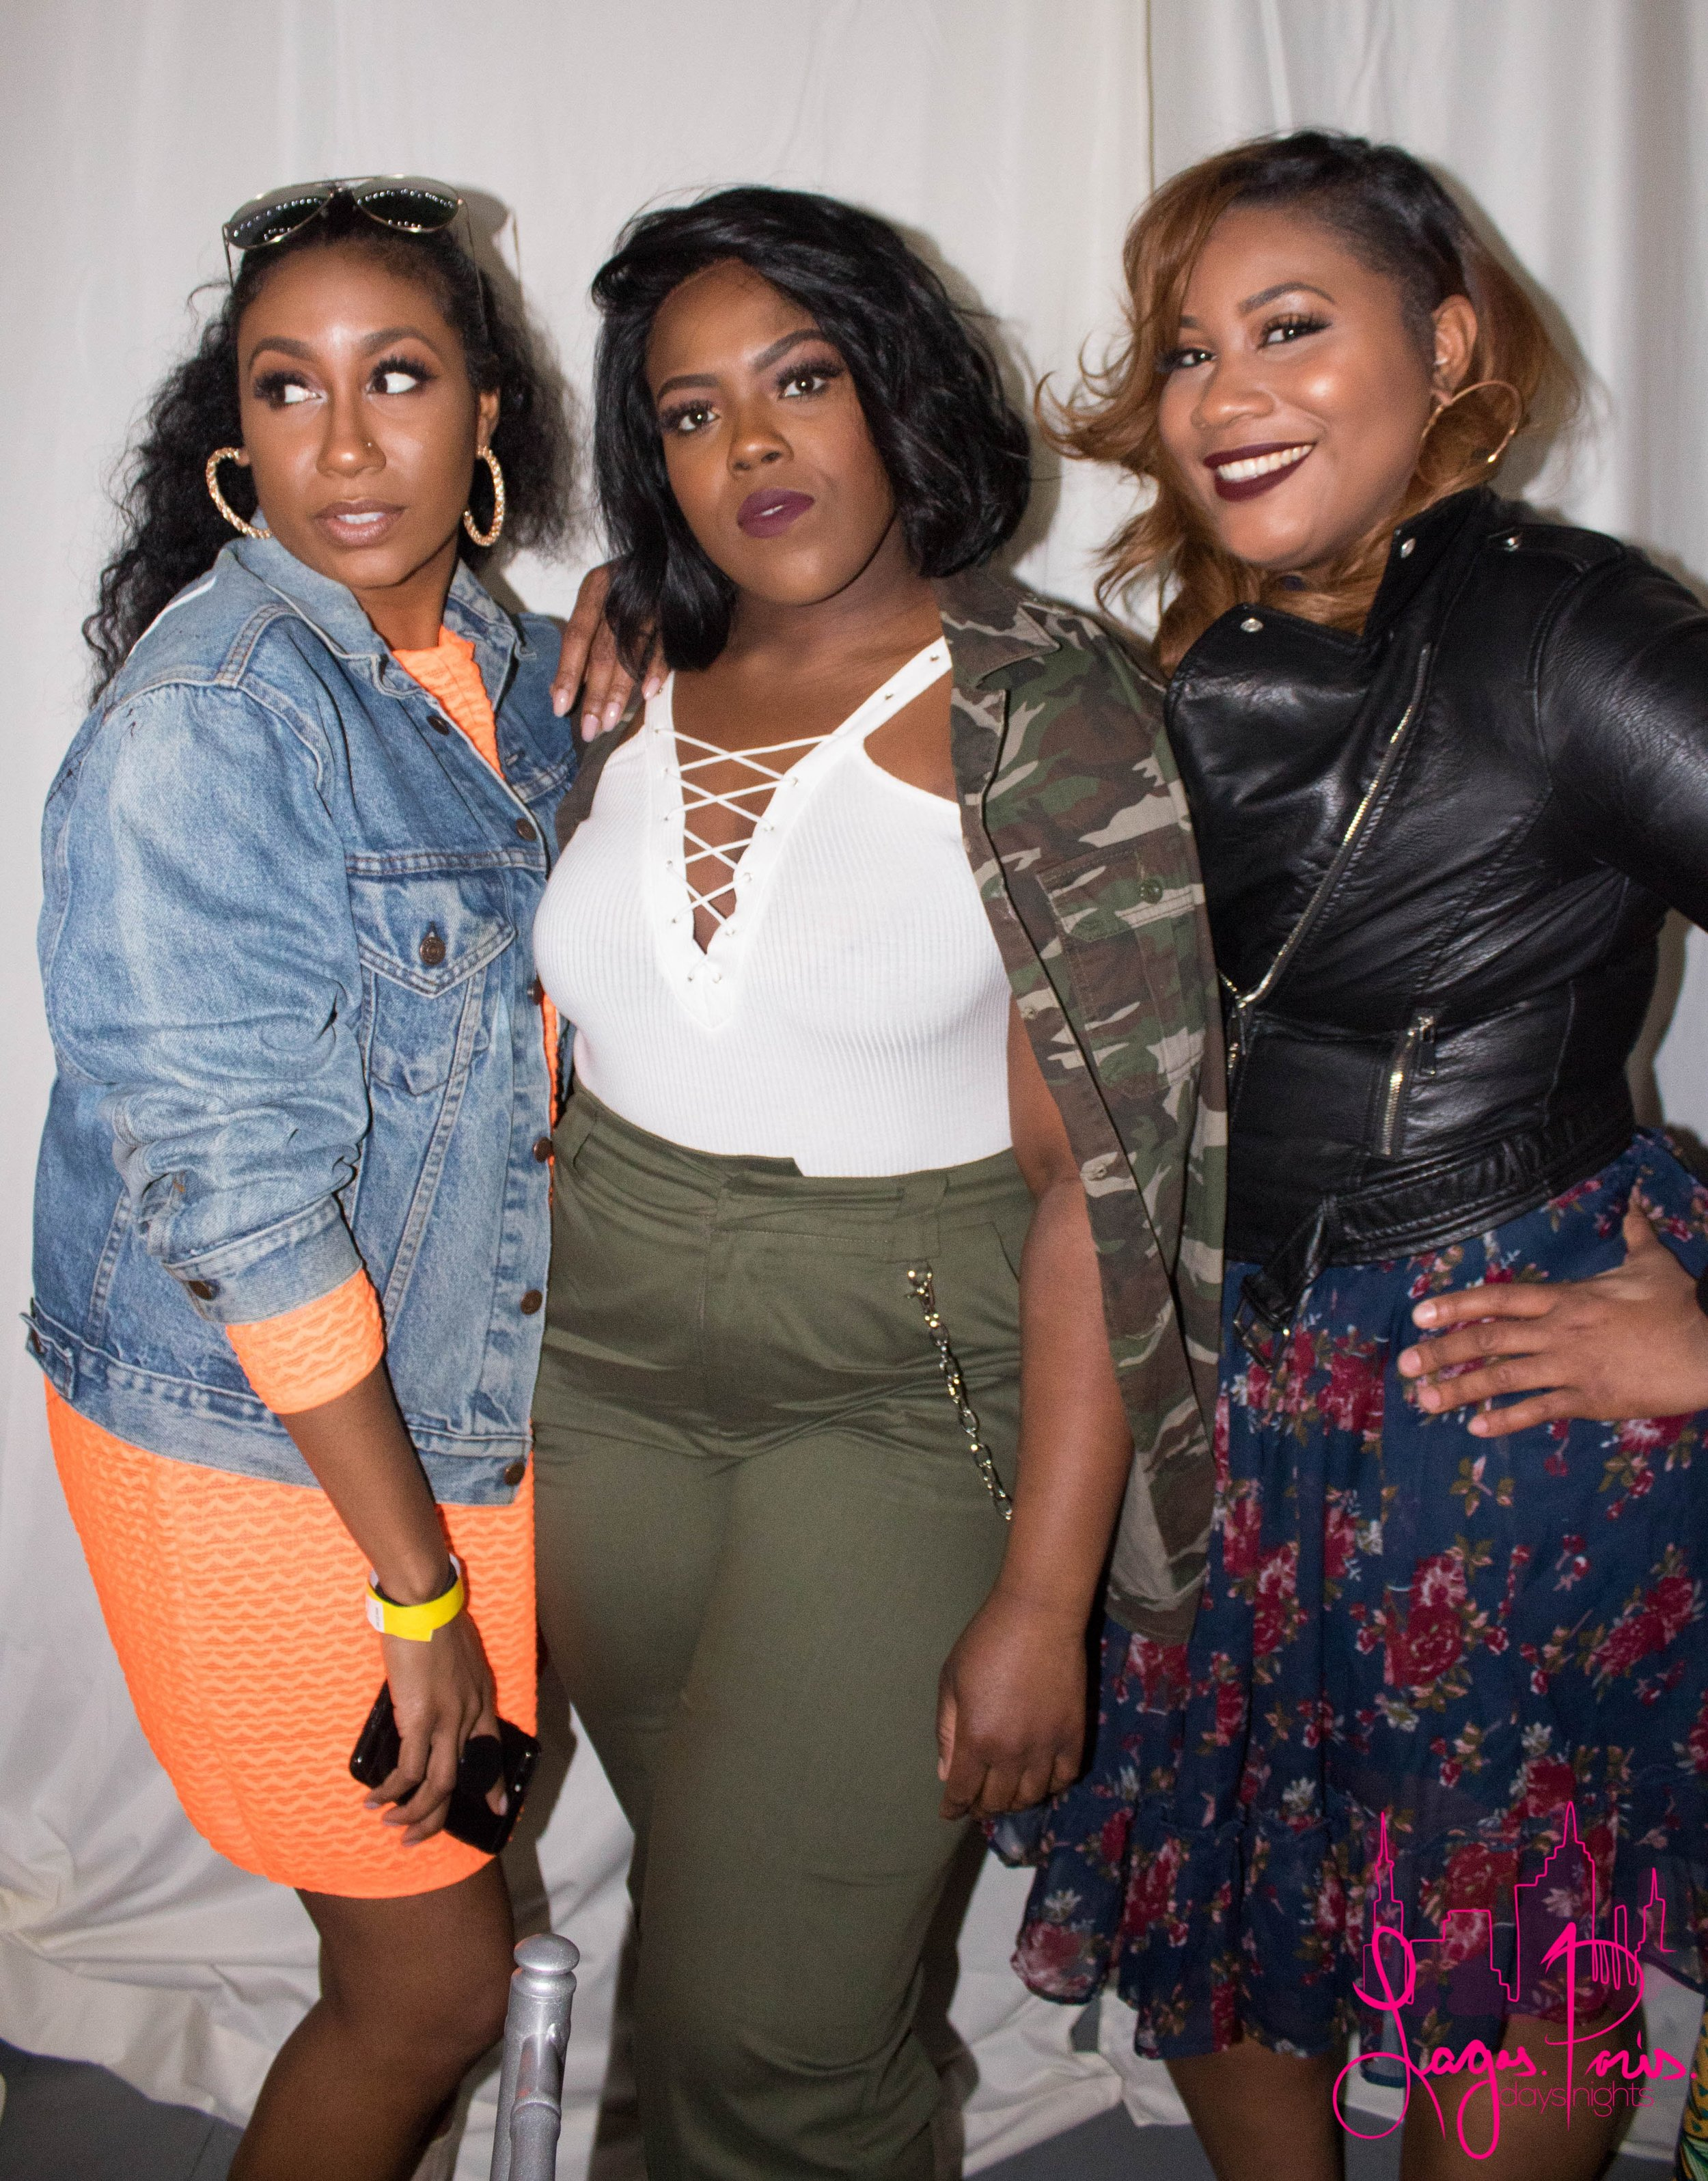 Angela Bailey (left), Nehemie August (center)and friend with the effortless slay.